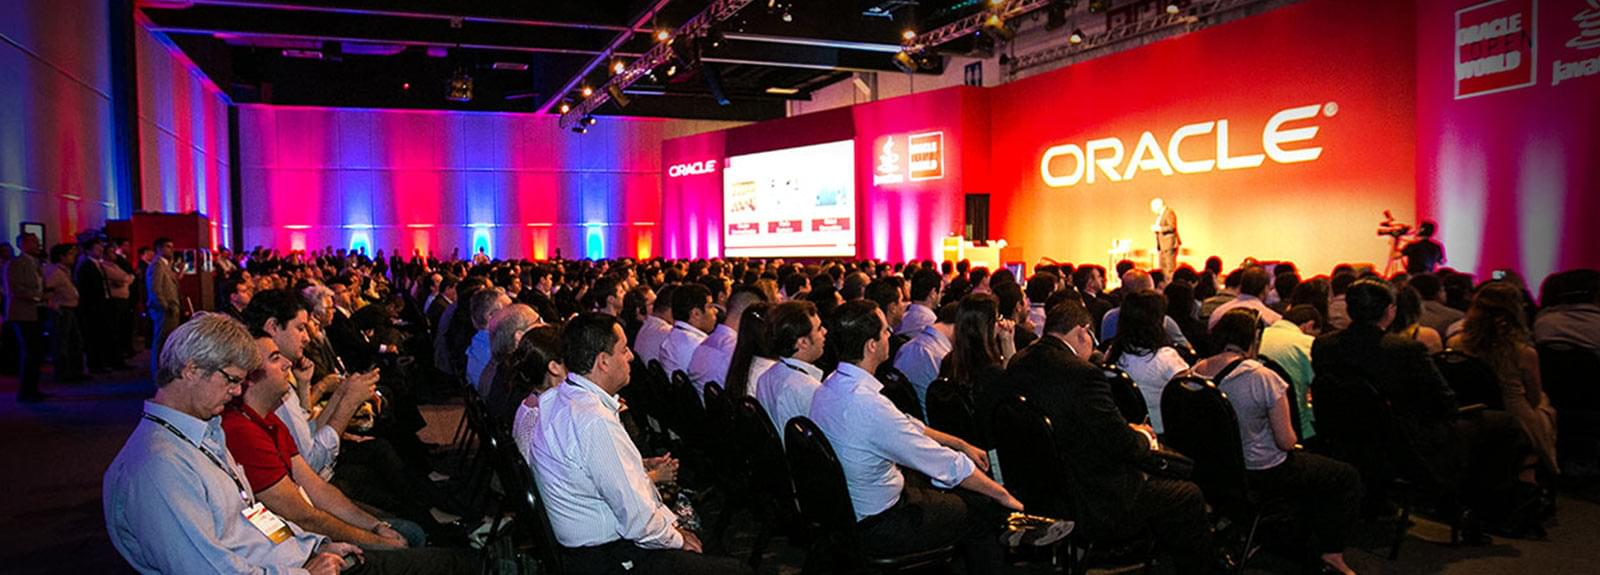 oracle openworld 2015 lecture